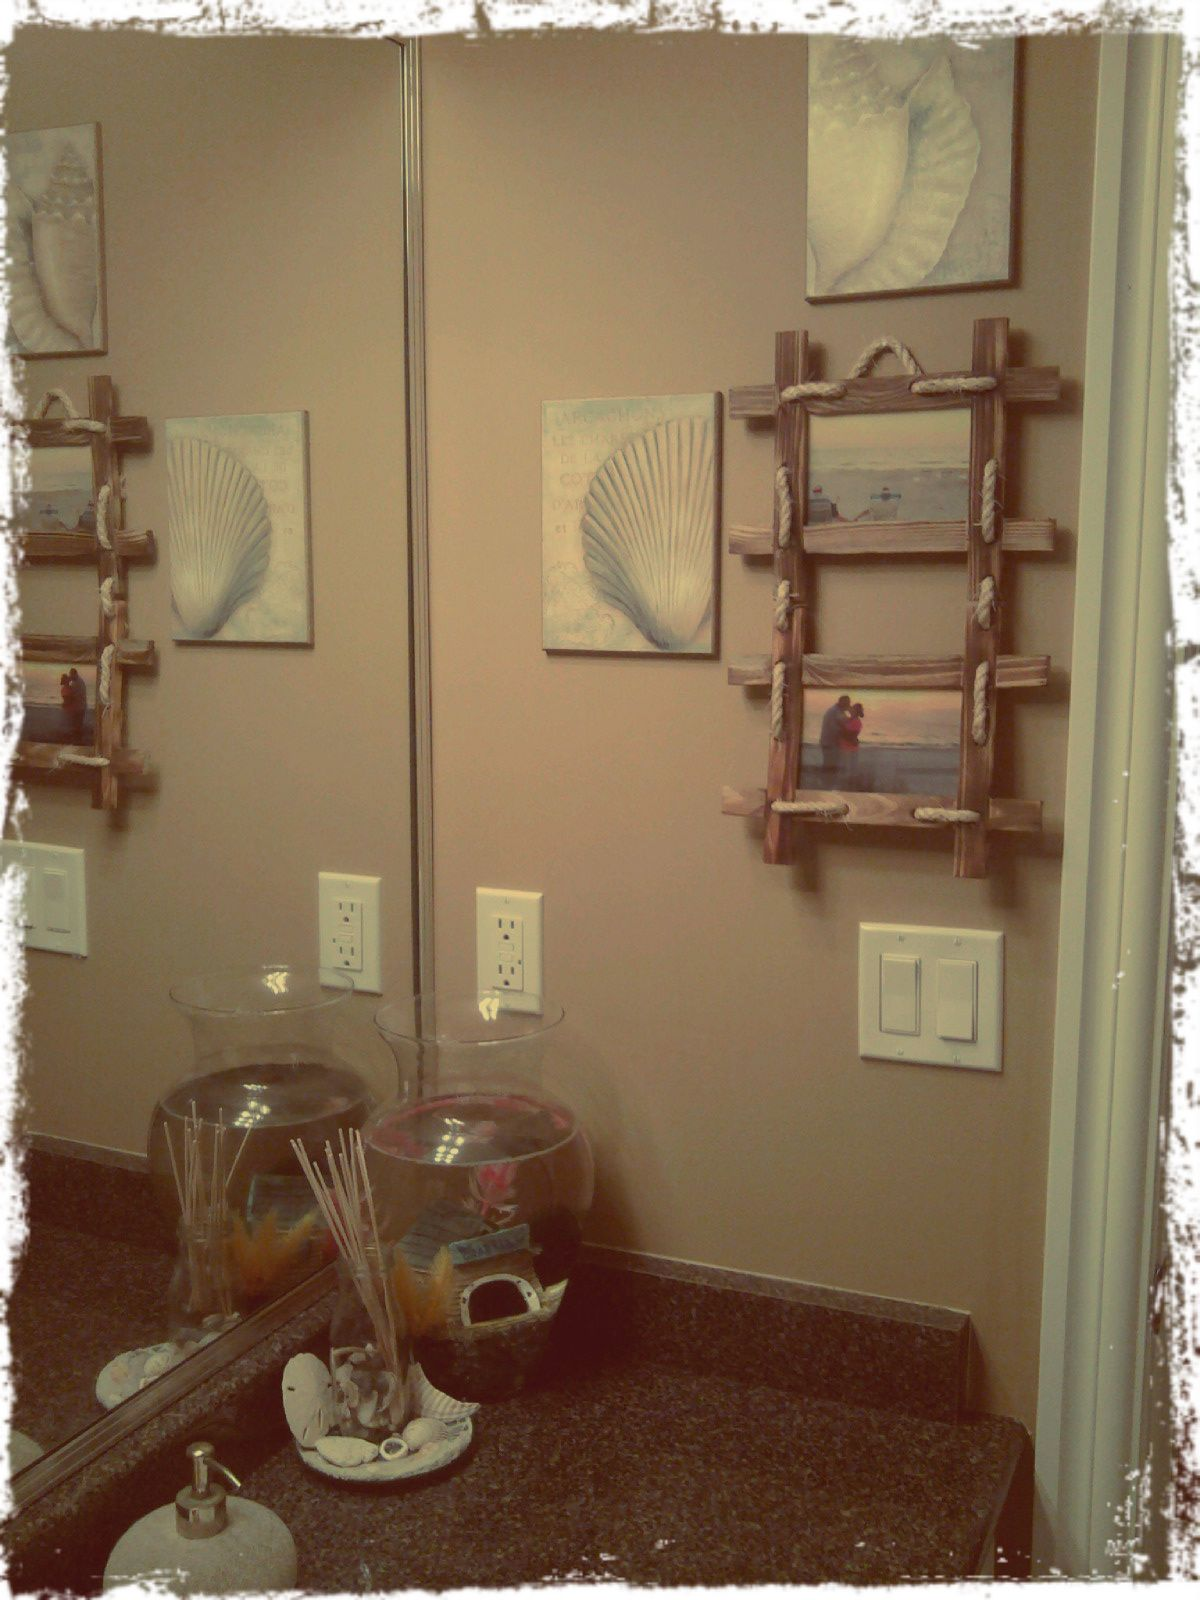 Home Goods Bathroom Wall Decor: Beach Bathroom Think This Is The Color I Want My Walls In